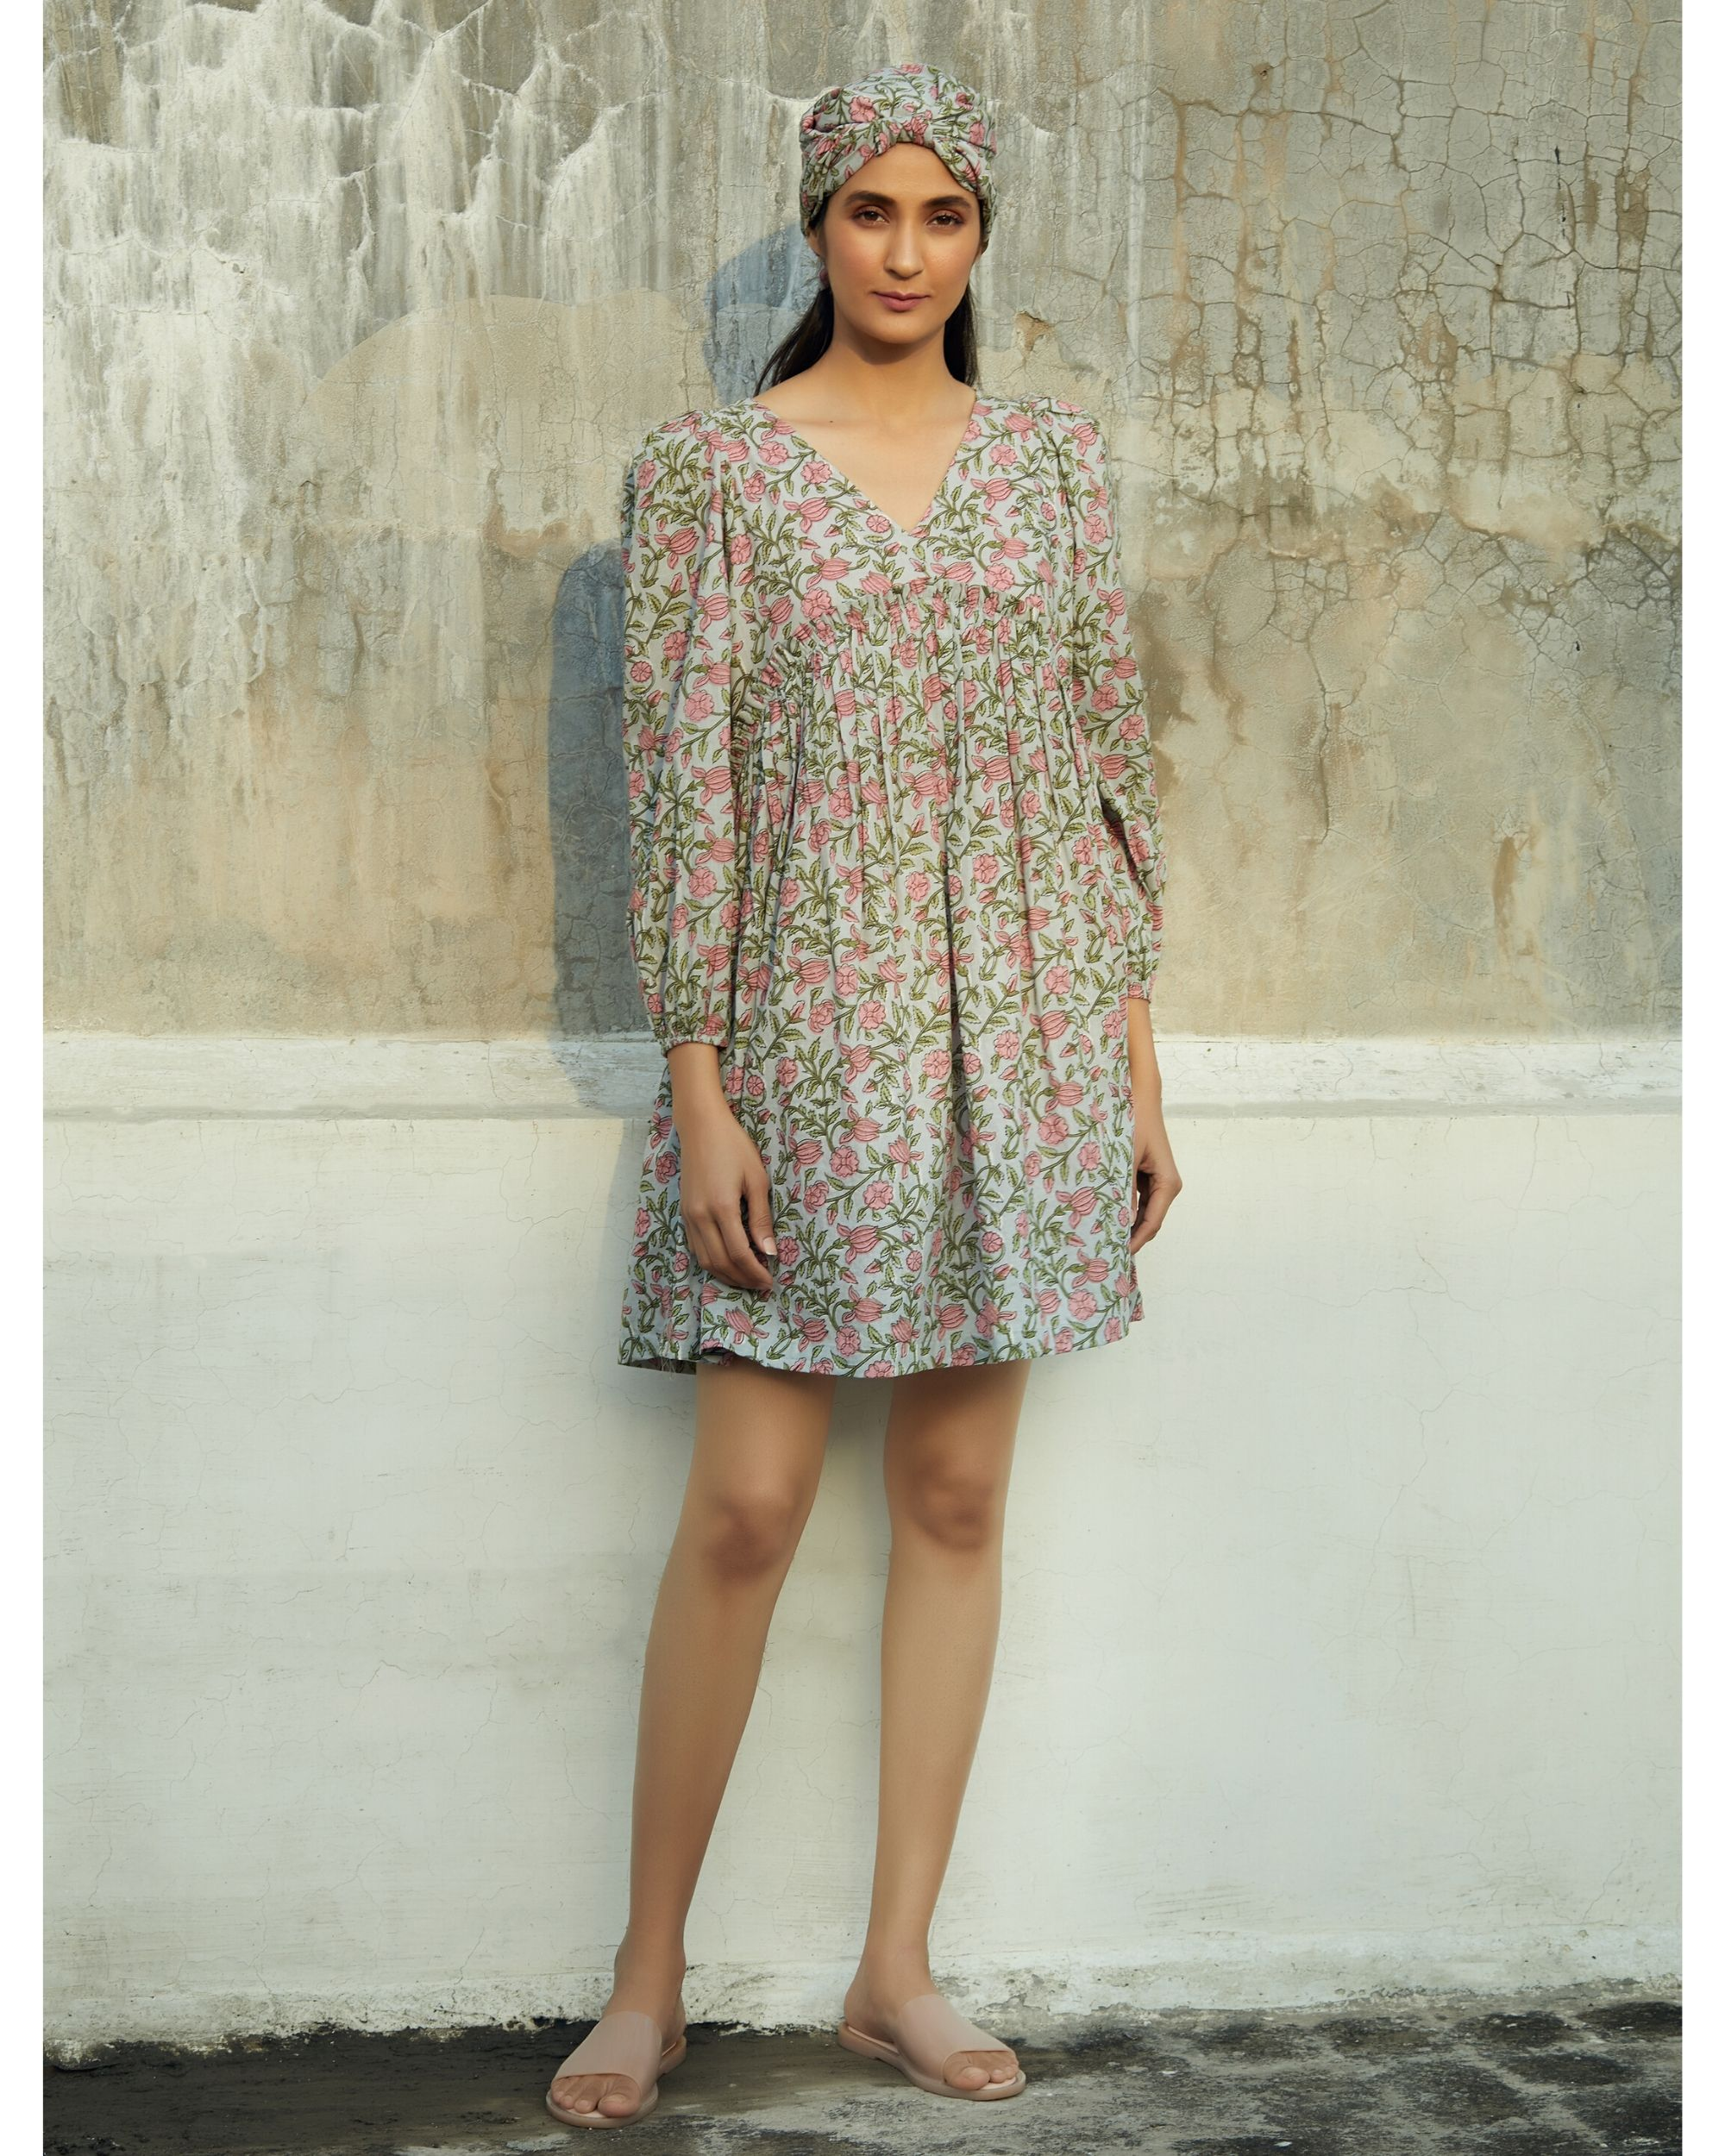 Grey and pink floral ruffled dress